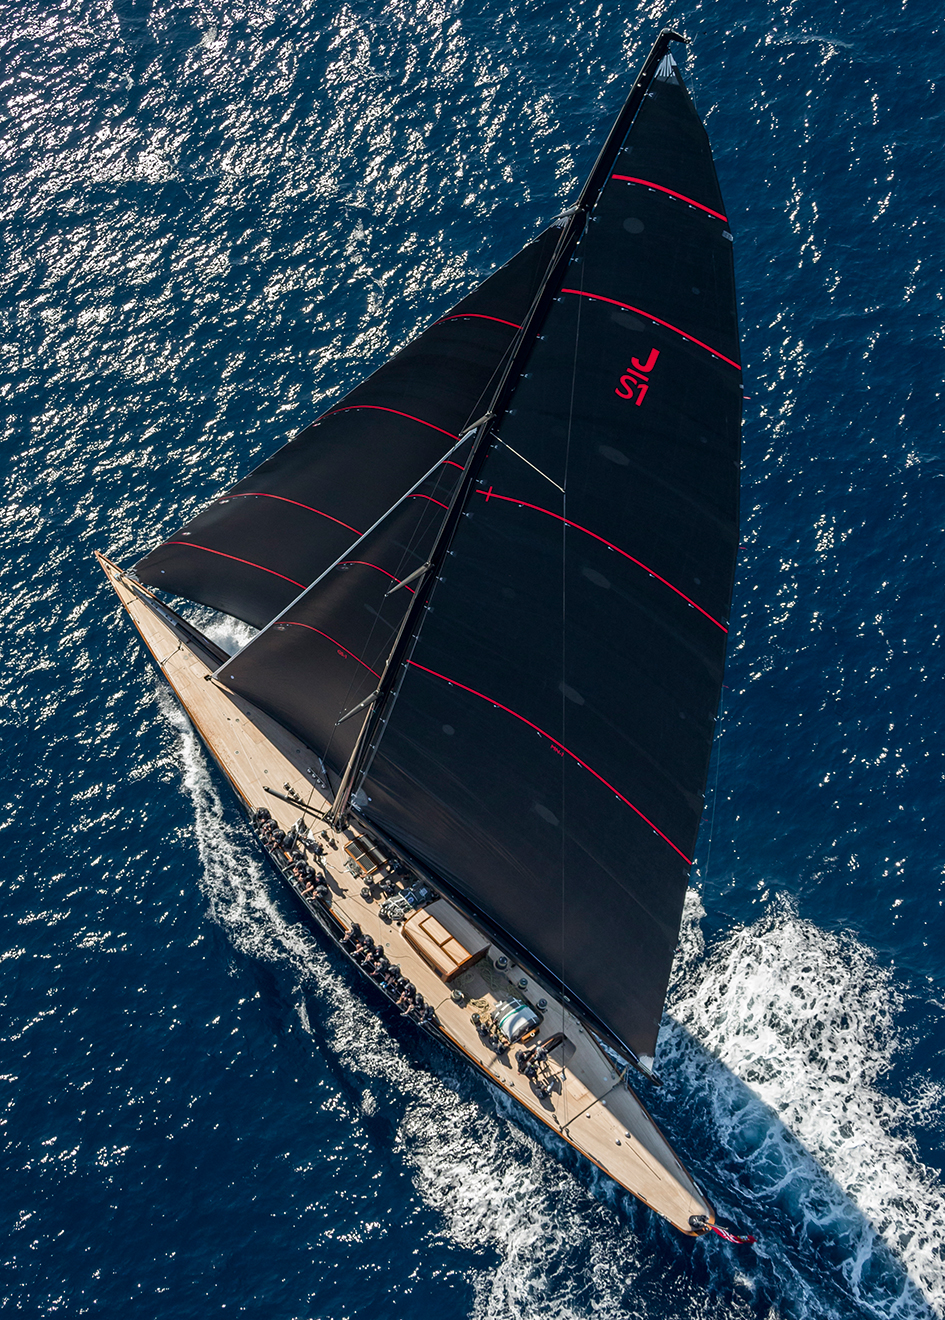 aerial-view-of-the-j-class-sailing-yacht-svea-credit-carlo-borlenghi